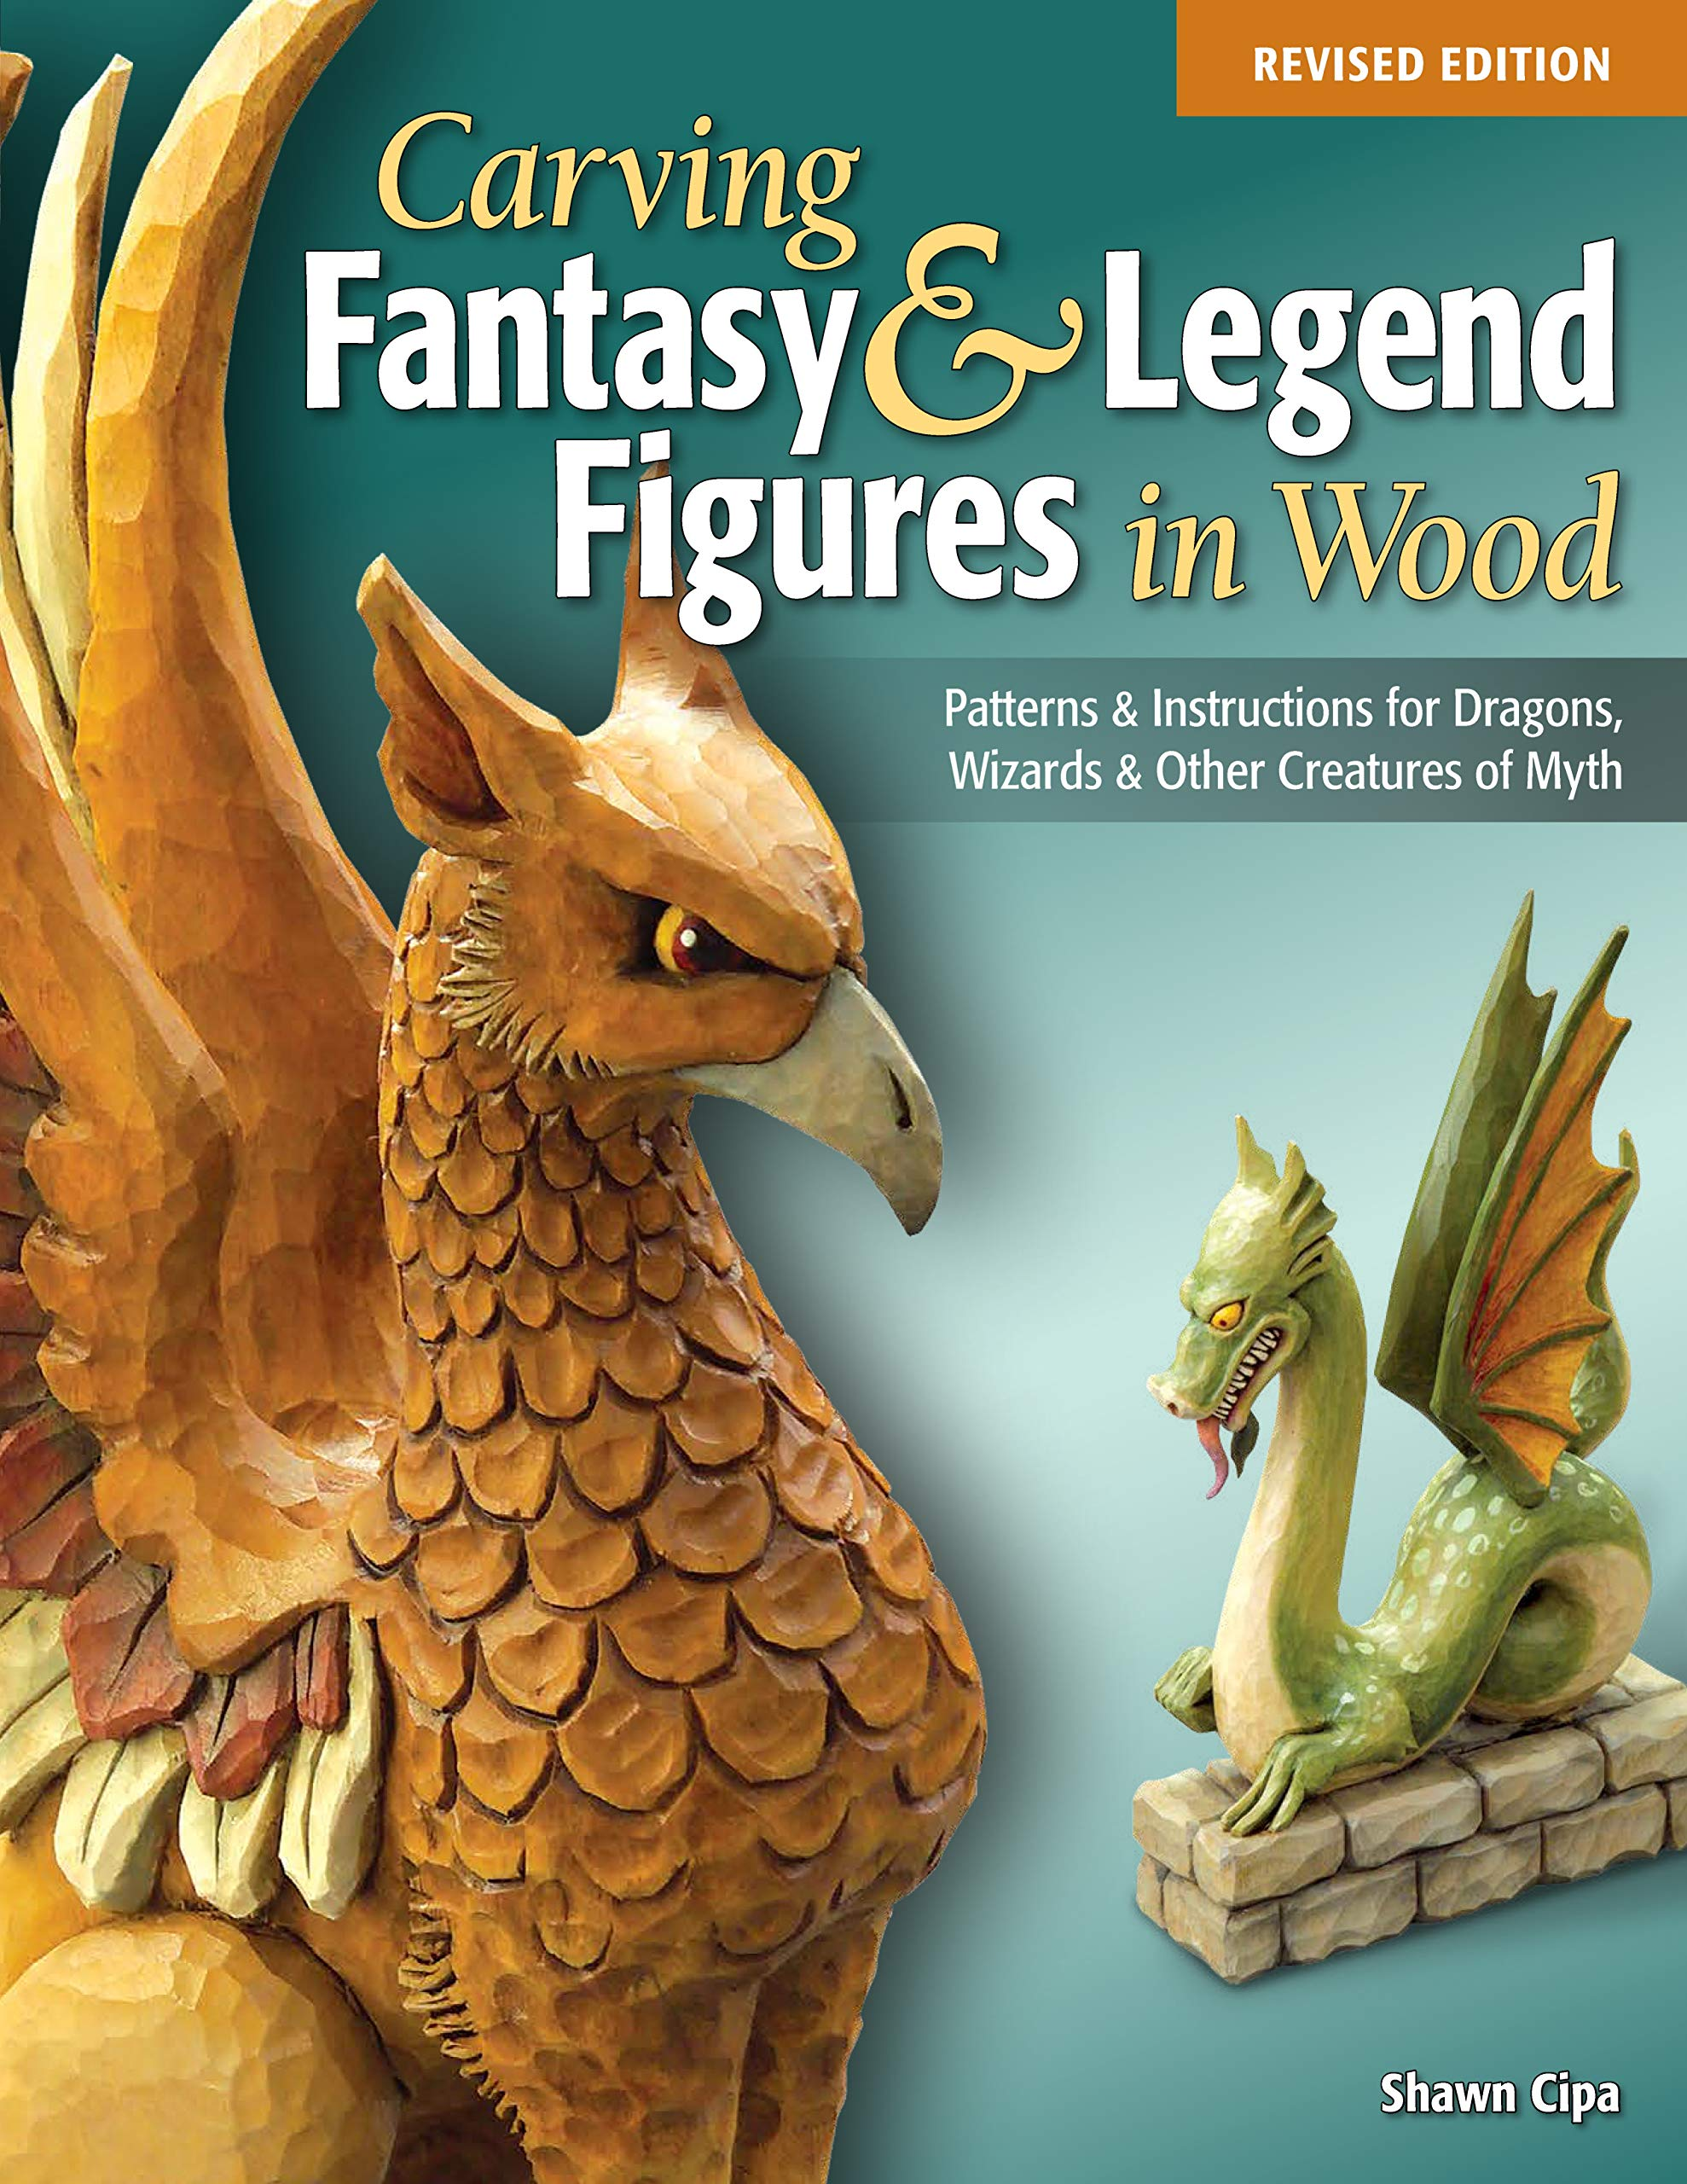 Carving Fantasy Legend Figures In Wood Revised Edition Patterns Instructions For Dragons Wizards Other Creatures Of Myth Fox Chapel Publishing Unicorn Mermaid Phoenix Faerie More Cipa Shawn 9781565238077